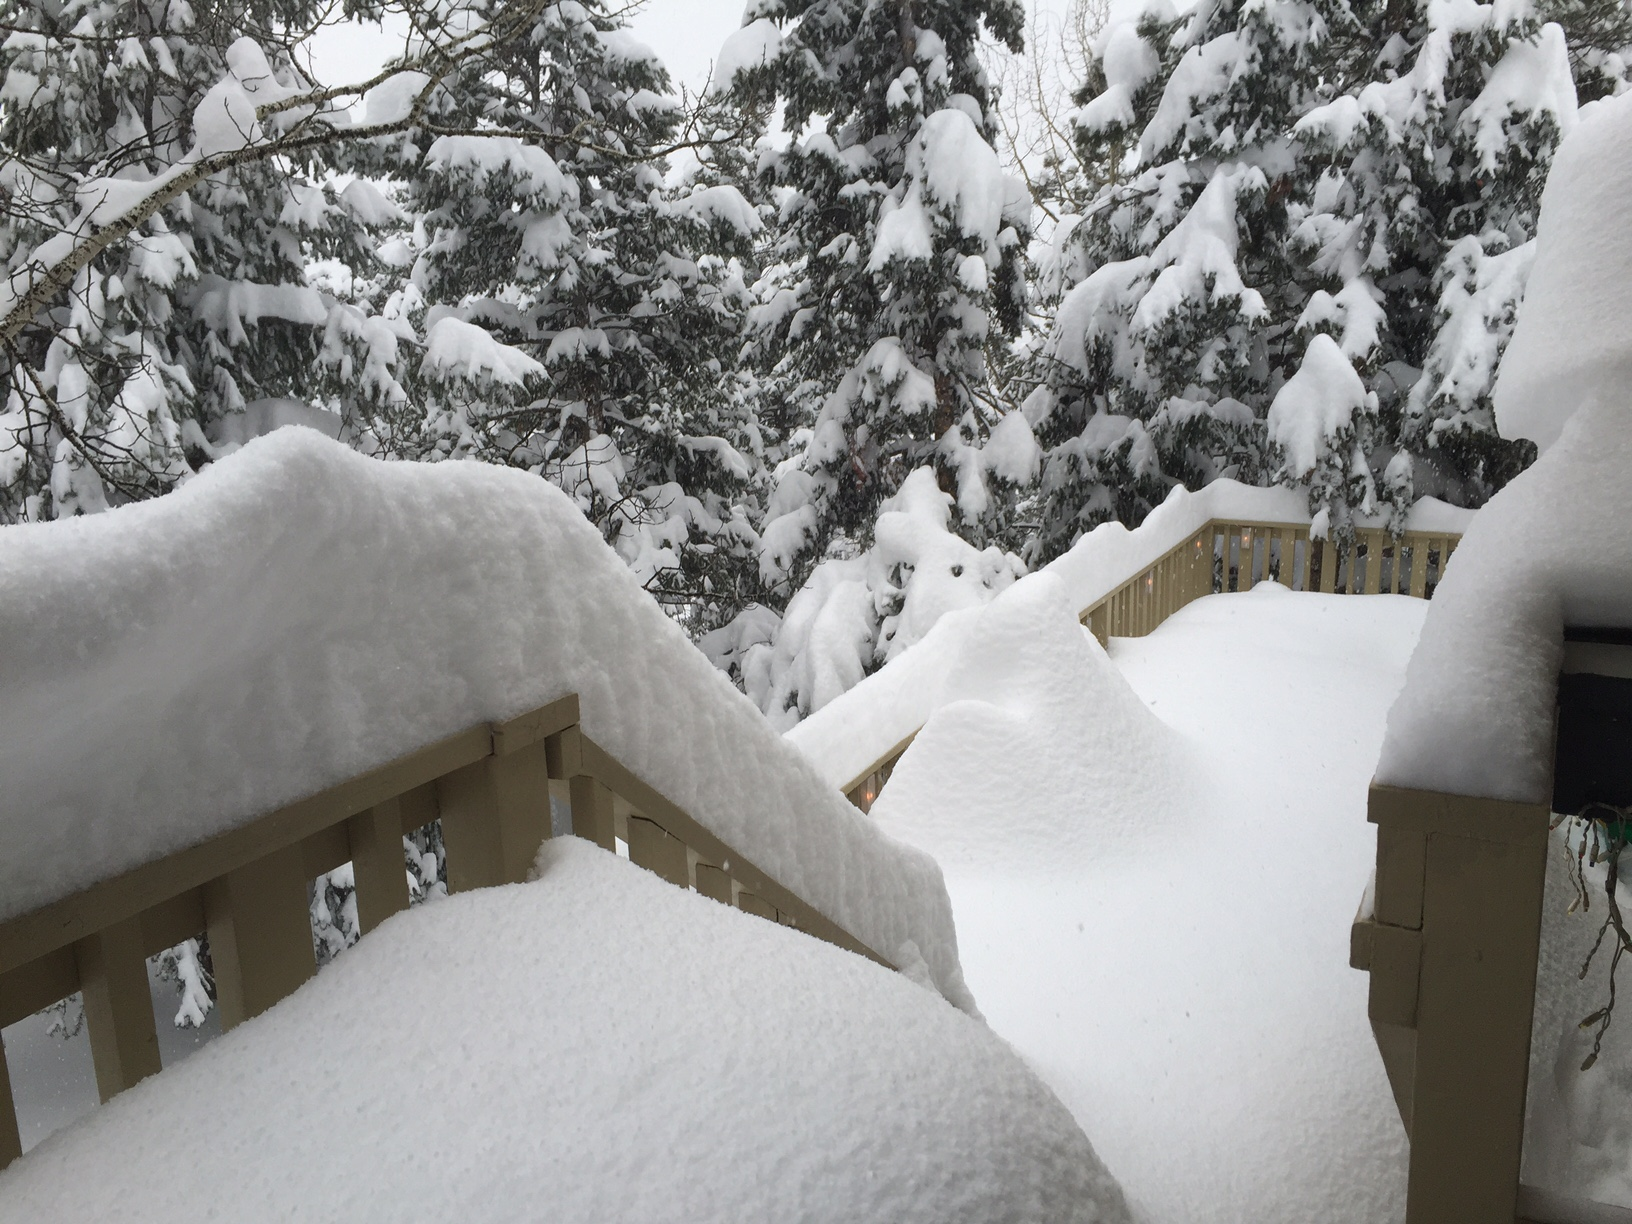 Nearly four feet of snow buries the home of CBS4 YouReporter Brandy Herbert in Conifer during a storm in April 2016.